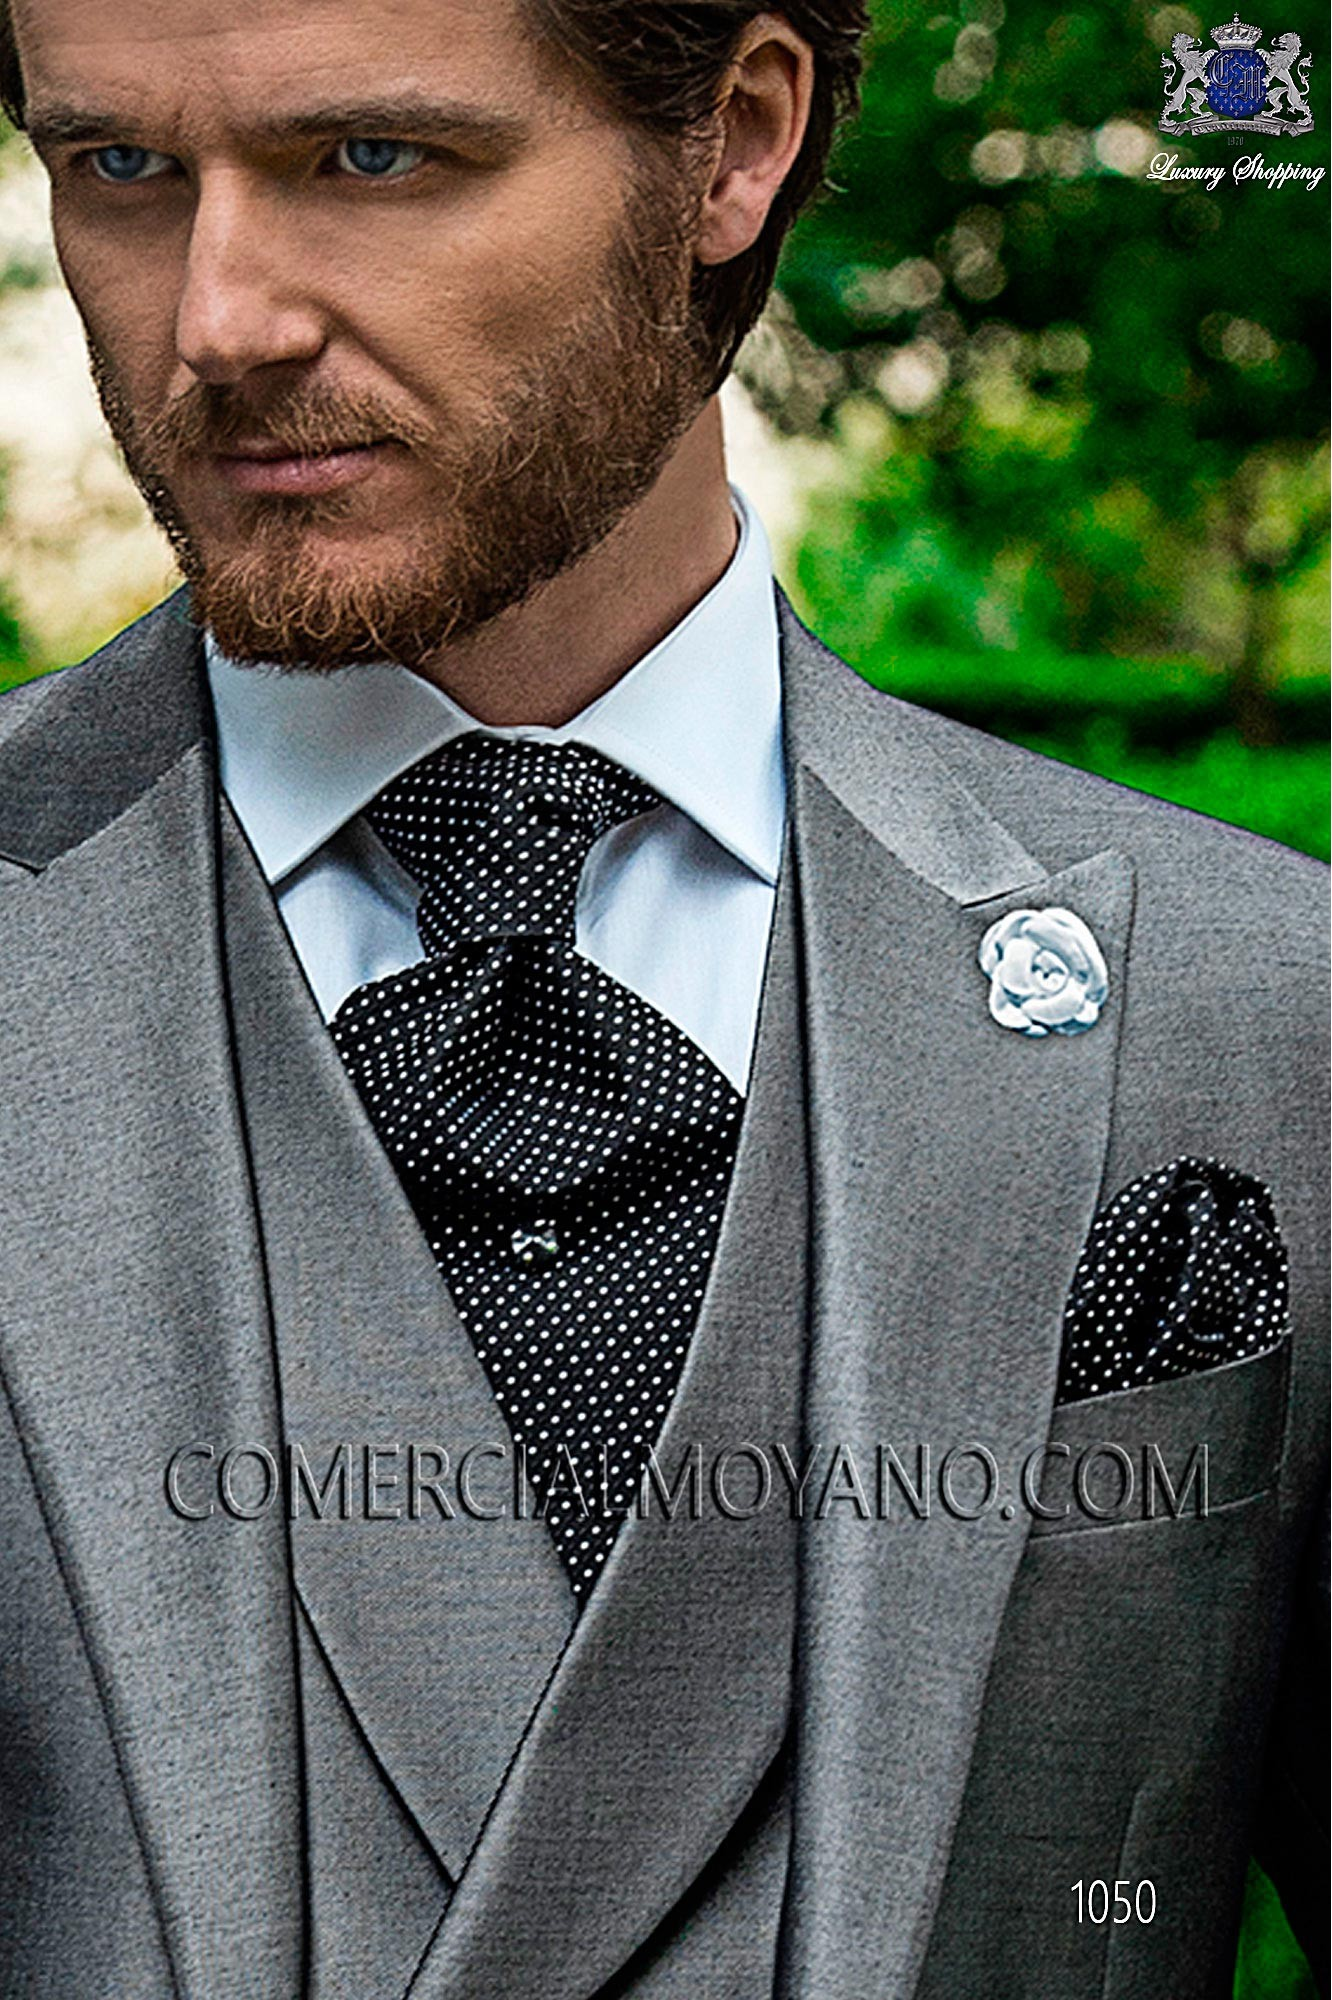 Italian fashion pearl gray men wedding suit, model: 1050 Ottavio Nuccio Gala 2017 Fashion Collection